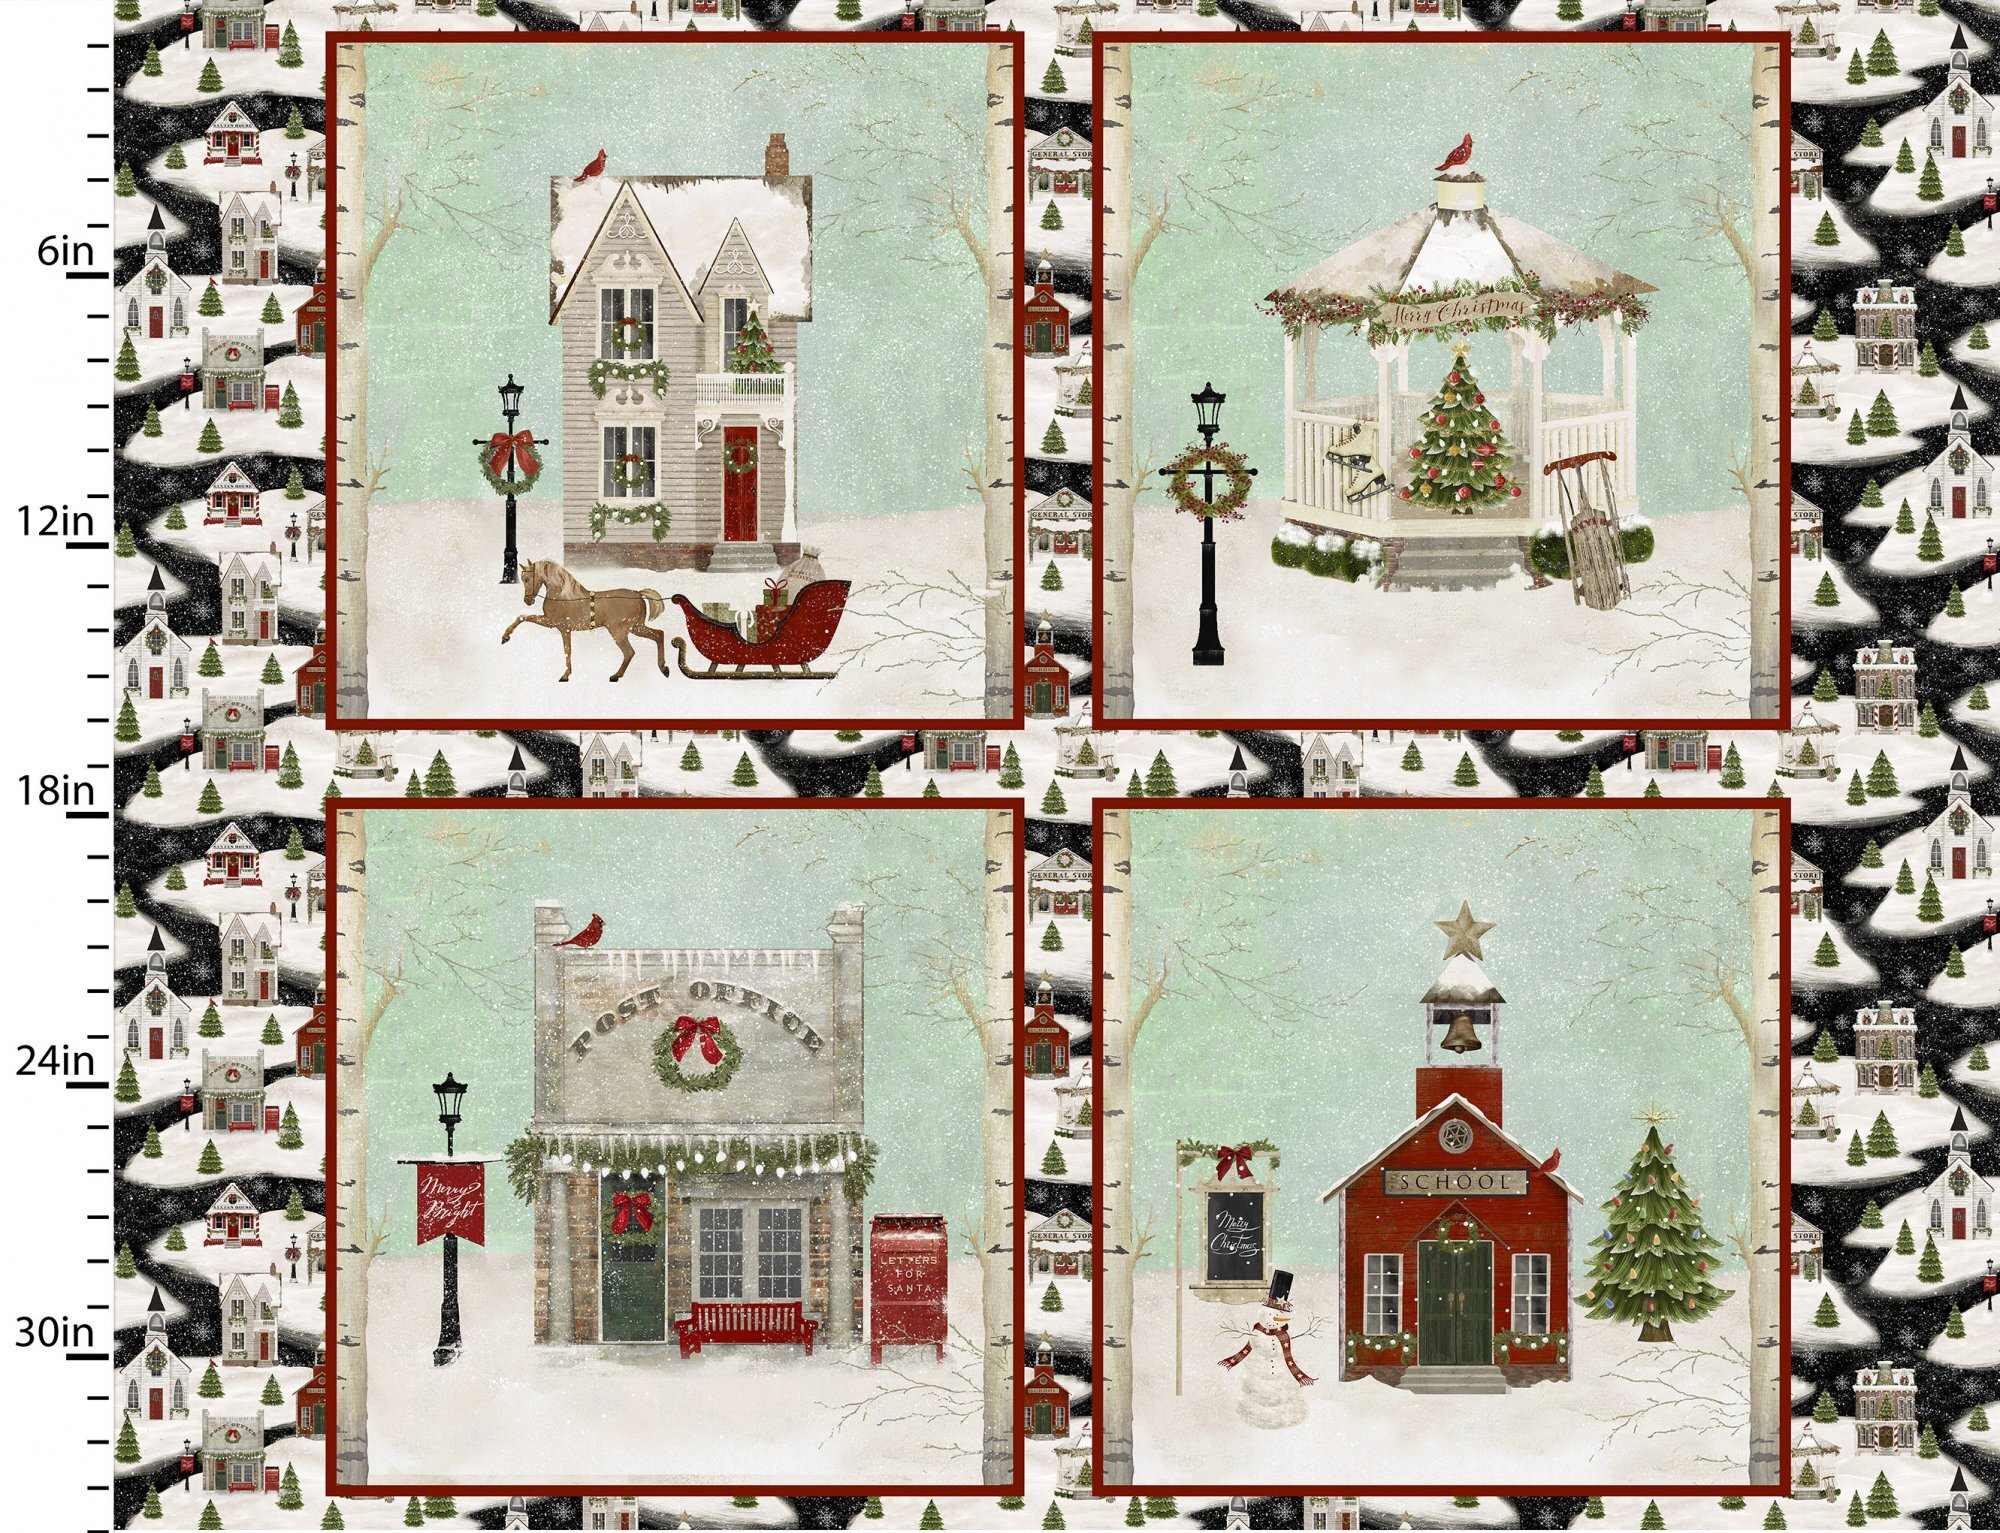 Home for the Holidays - Pillow Panel 58071